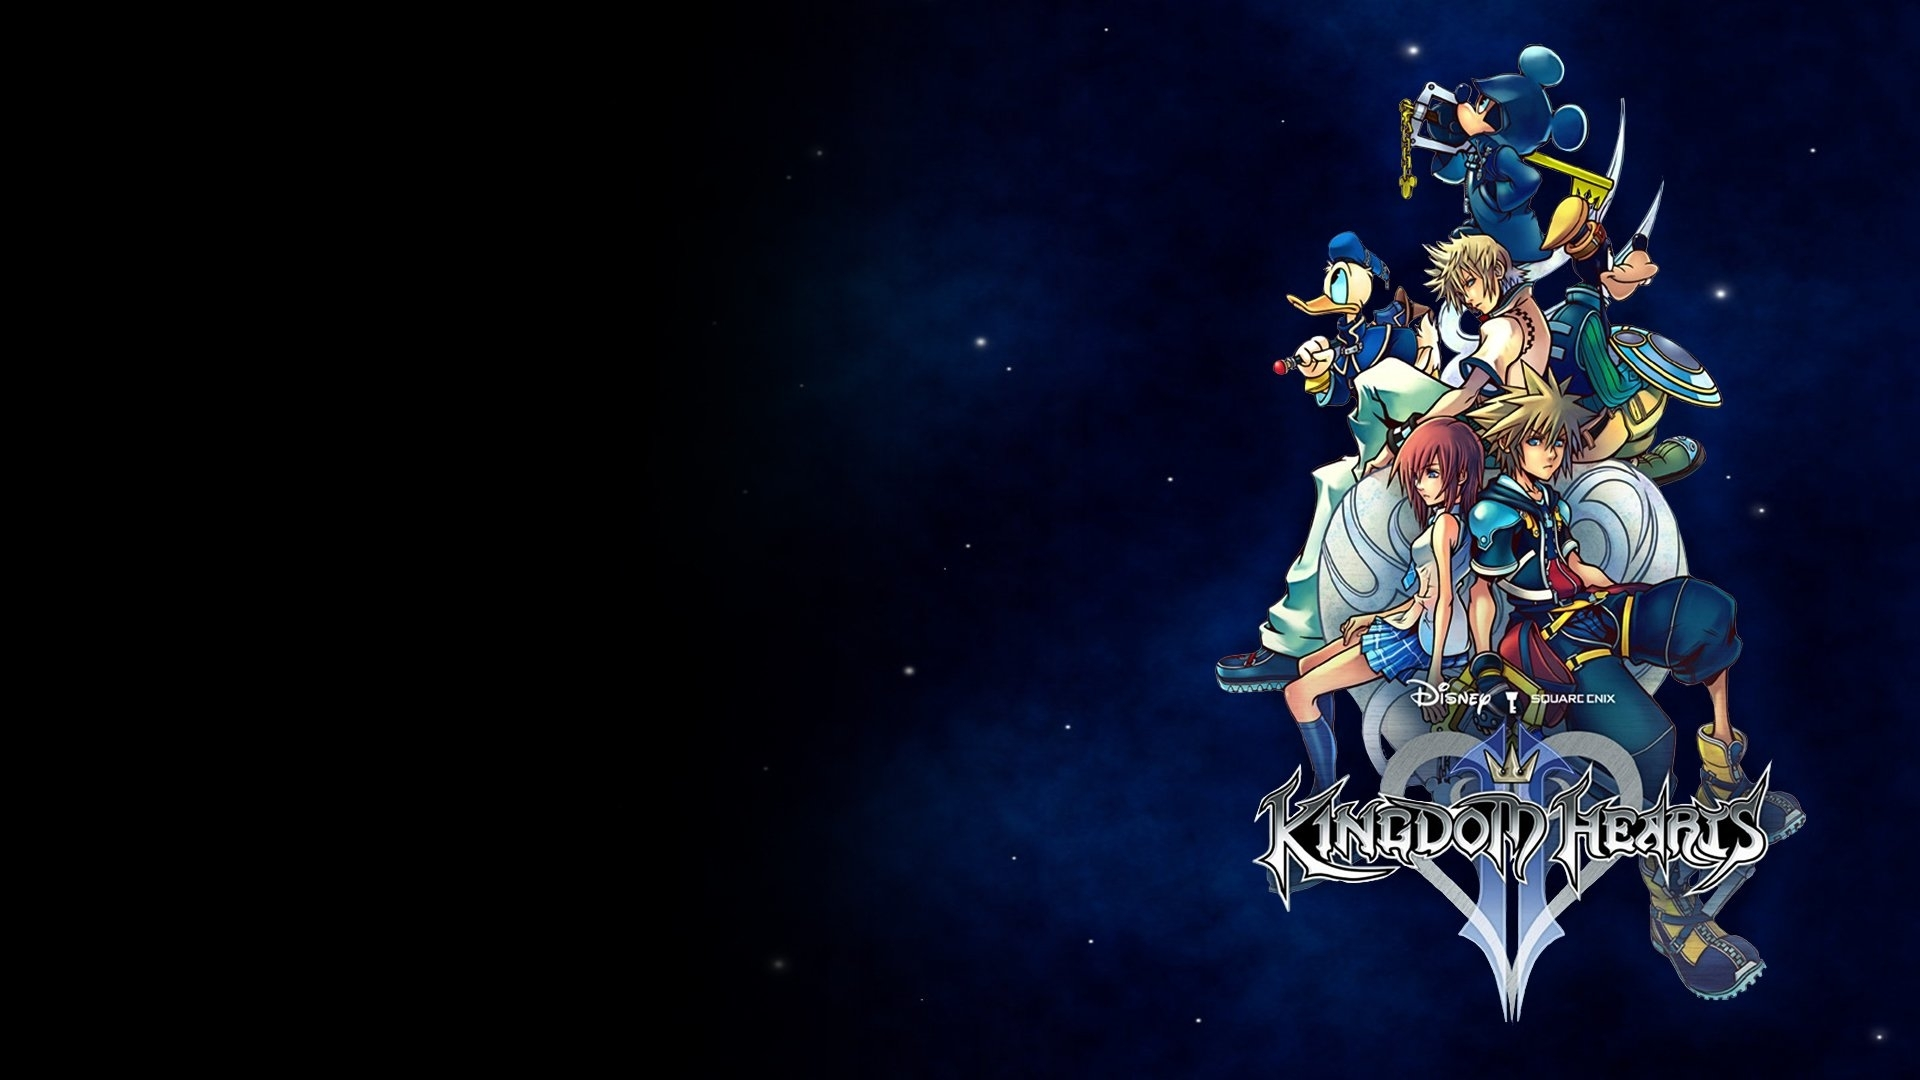 6 kingdom hearts ii fonds d'écran hd | arrière-plans - wallpaper abyss